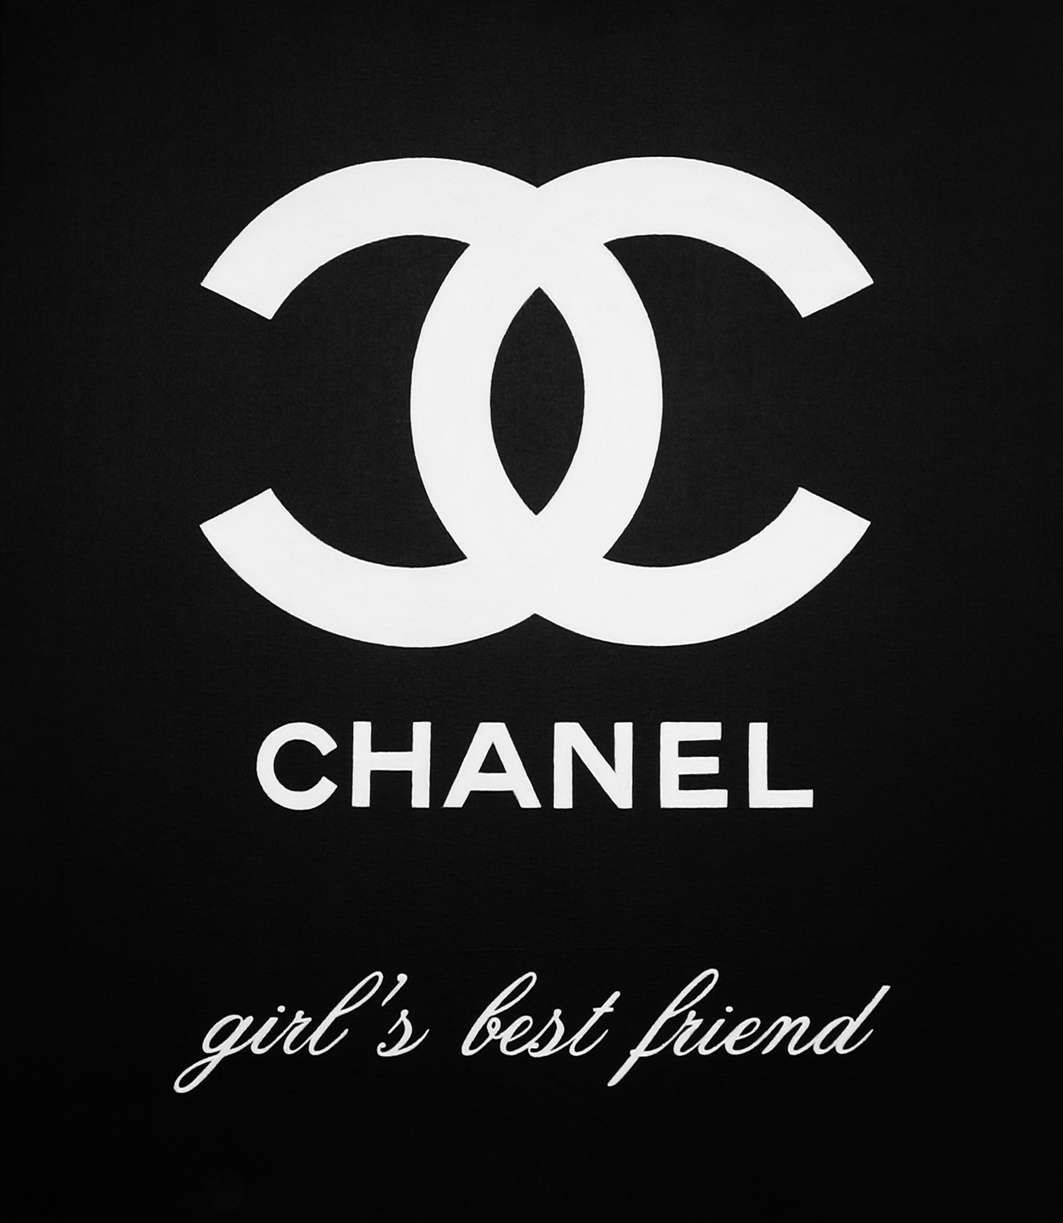 Chanel Is The Best Girl's Friend Forever - painting info page